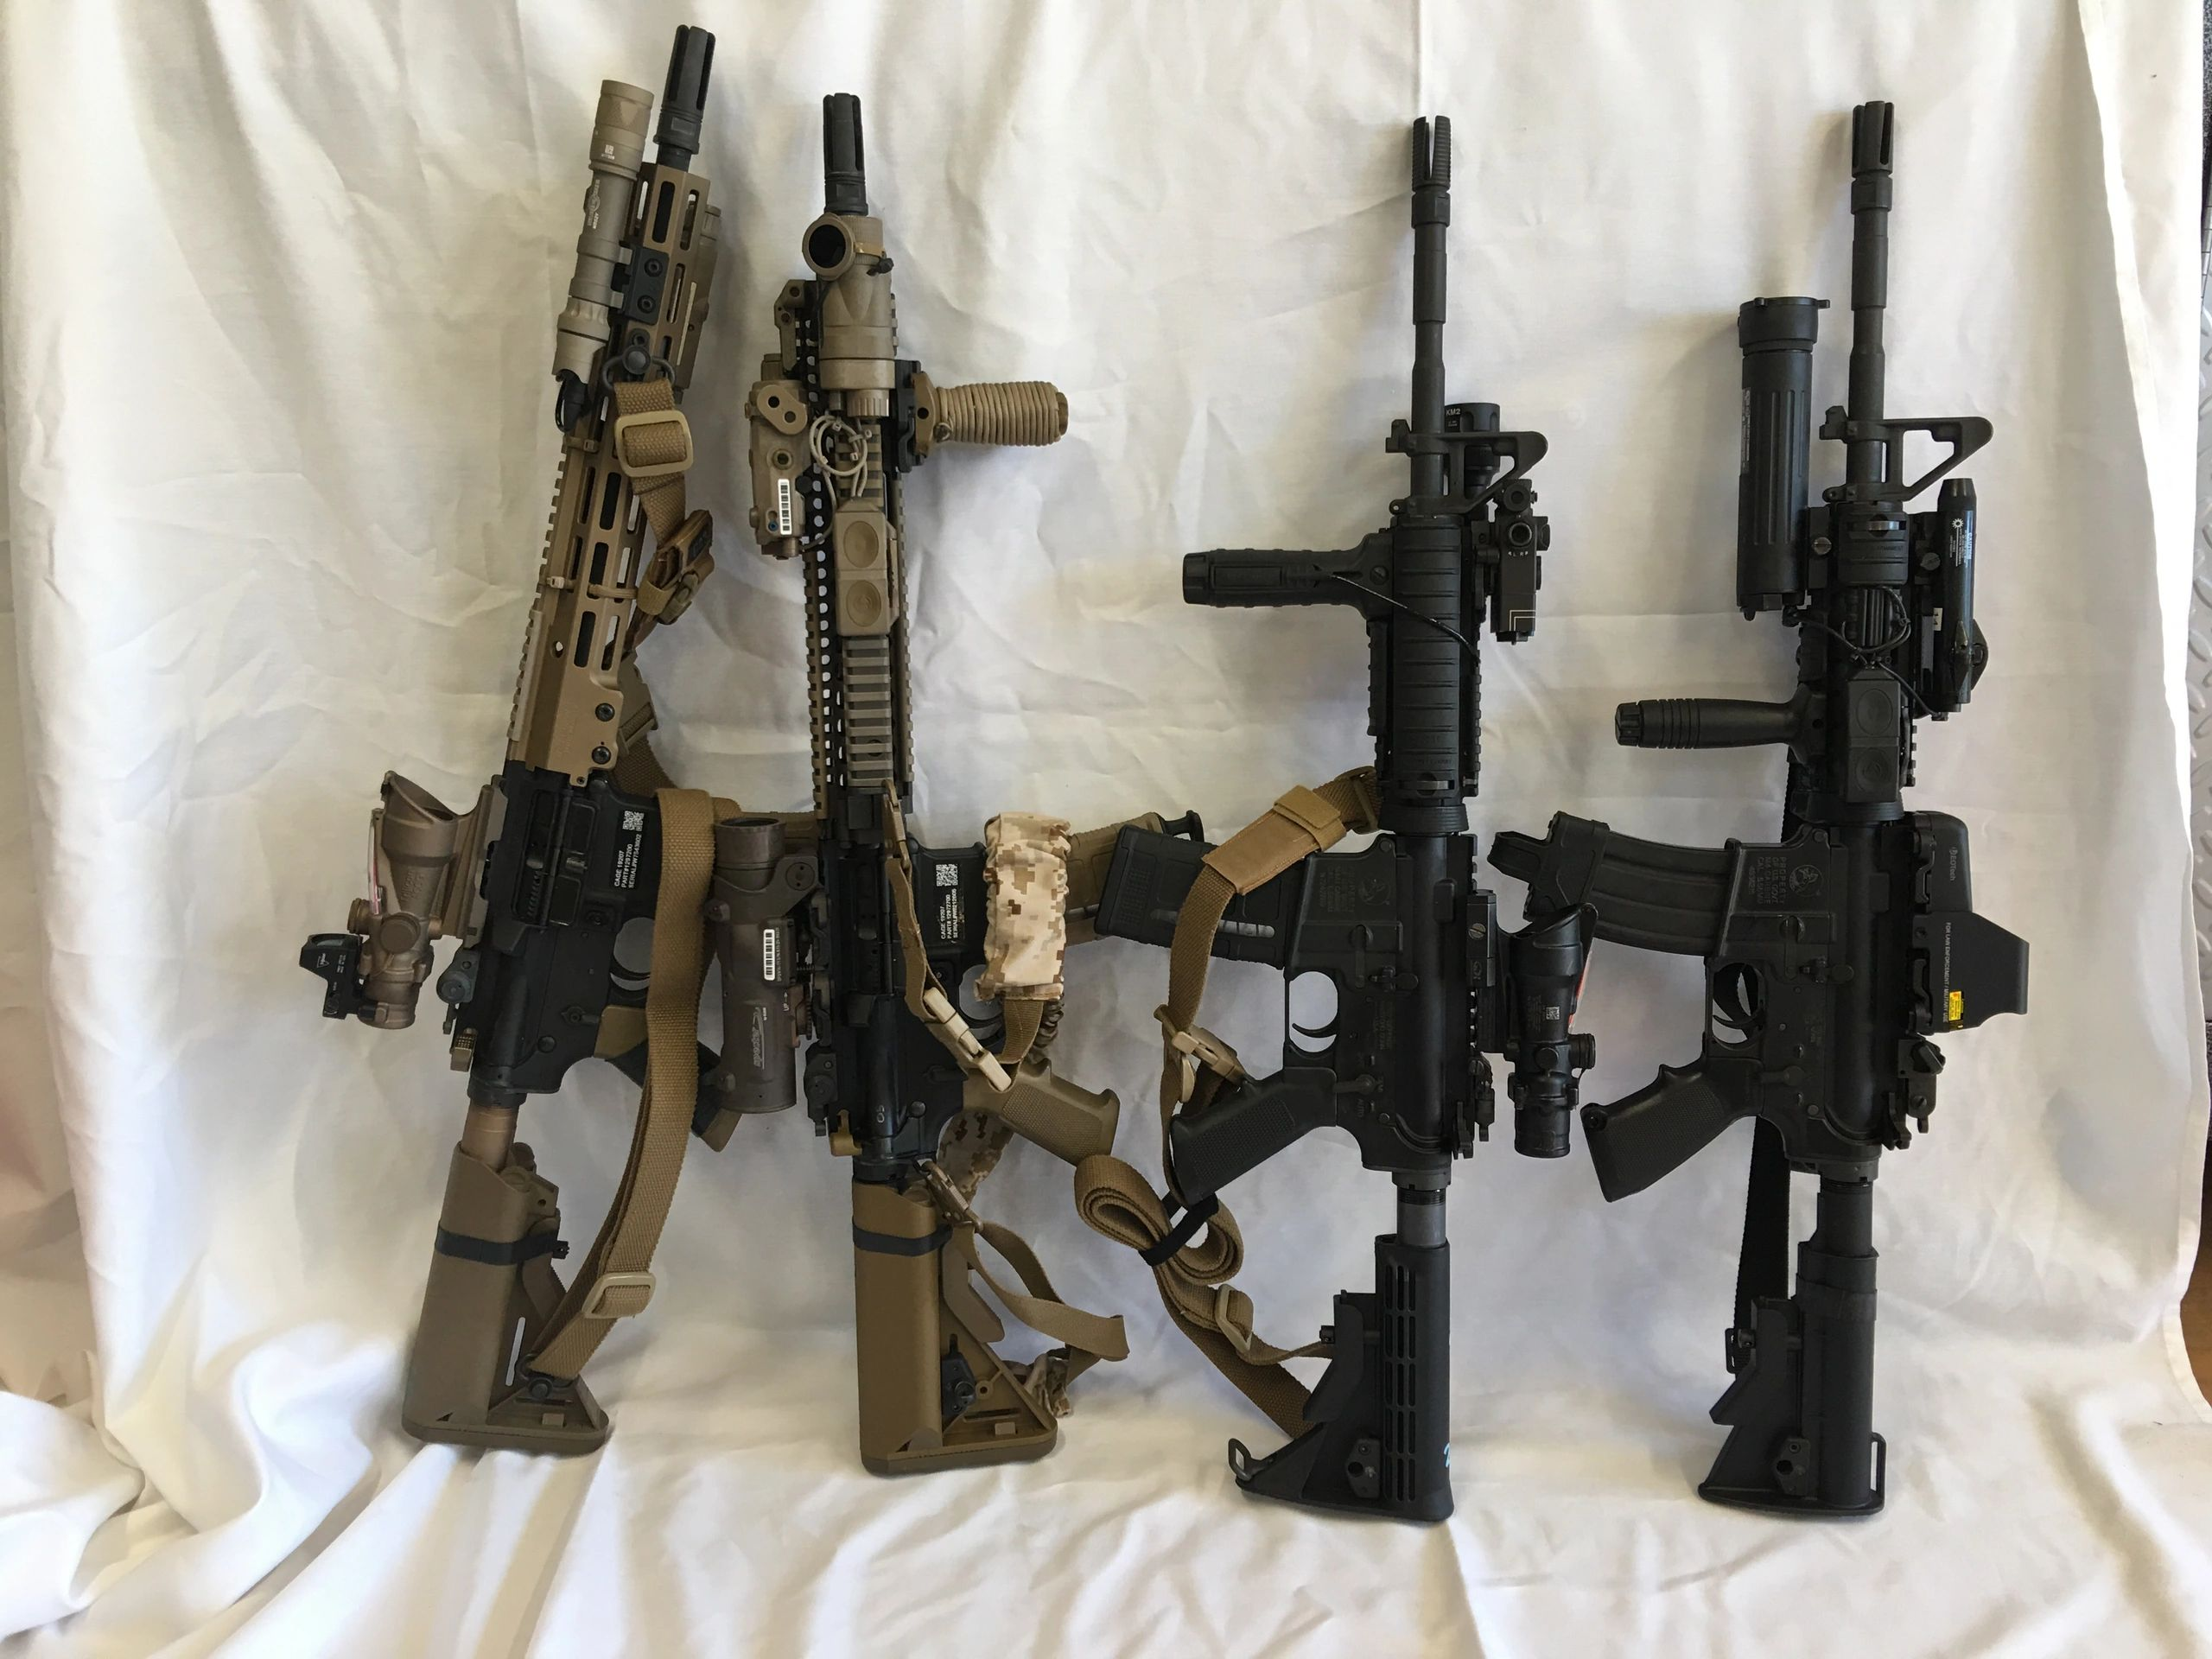 Sharkarms - Colt Ar15, Colt M4, M4 | sharkarms